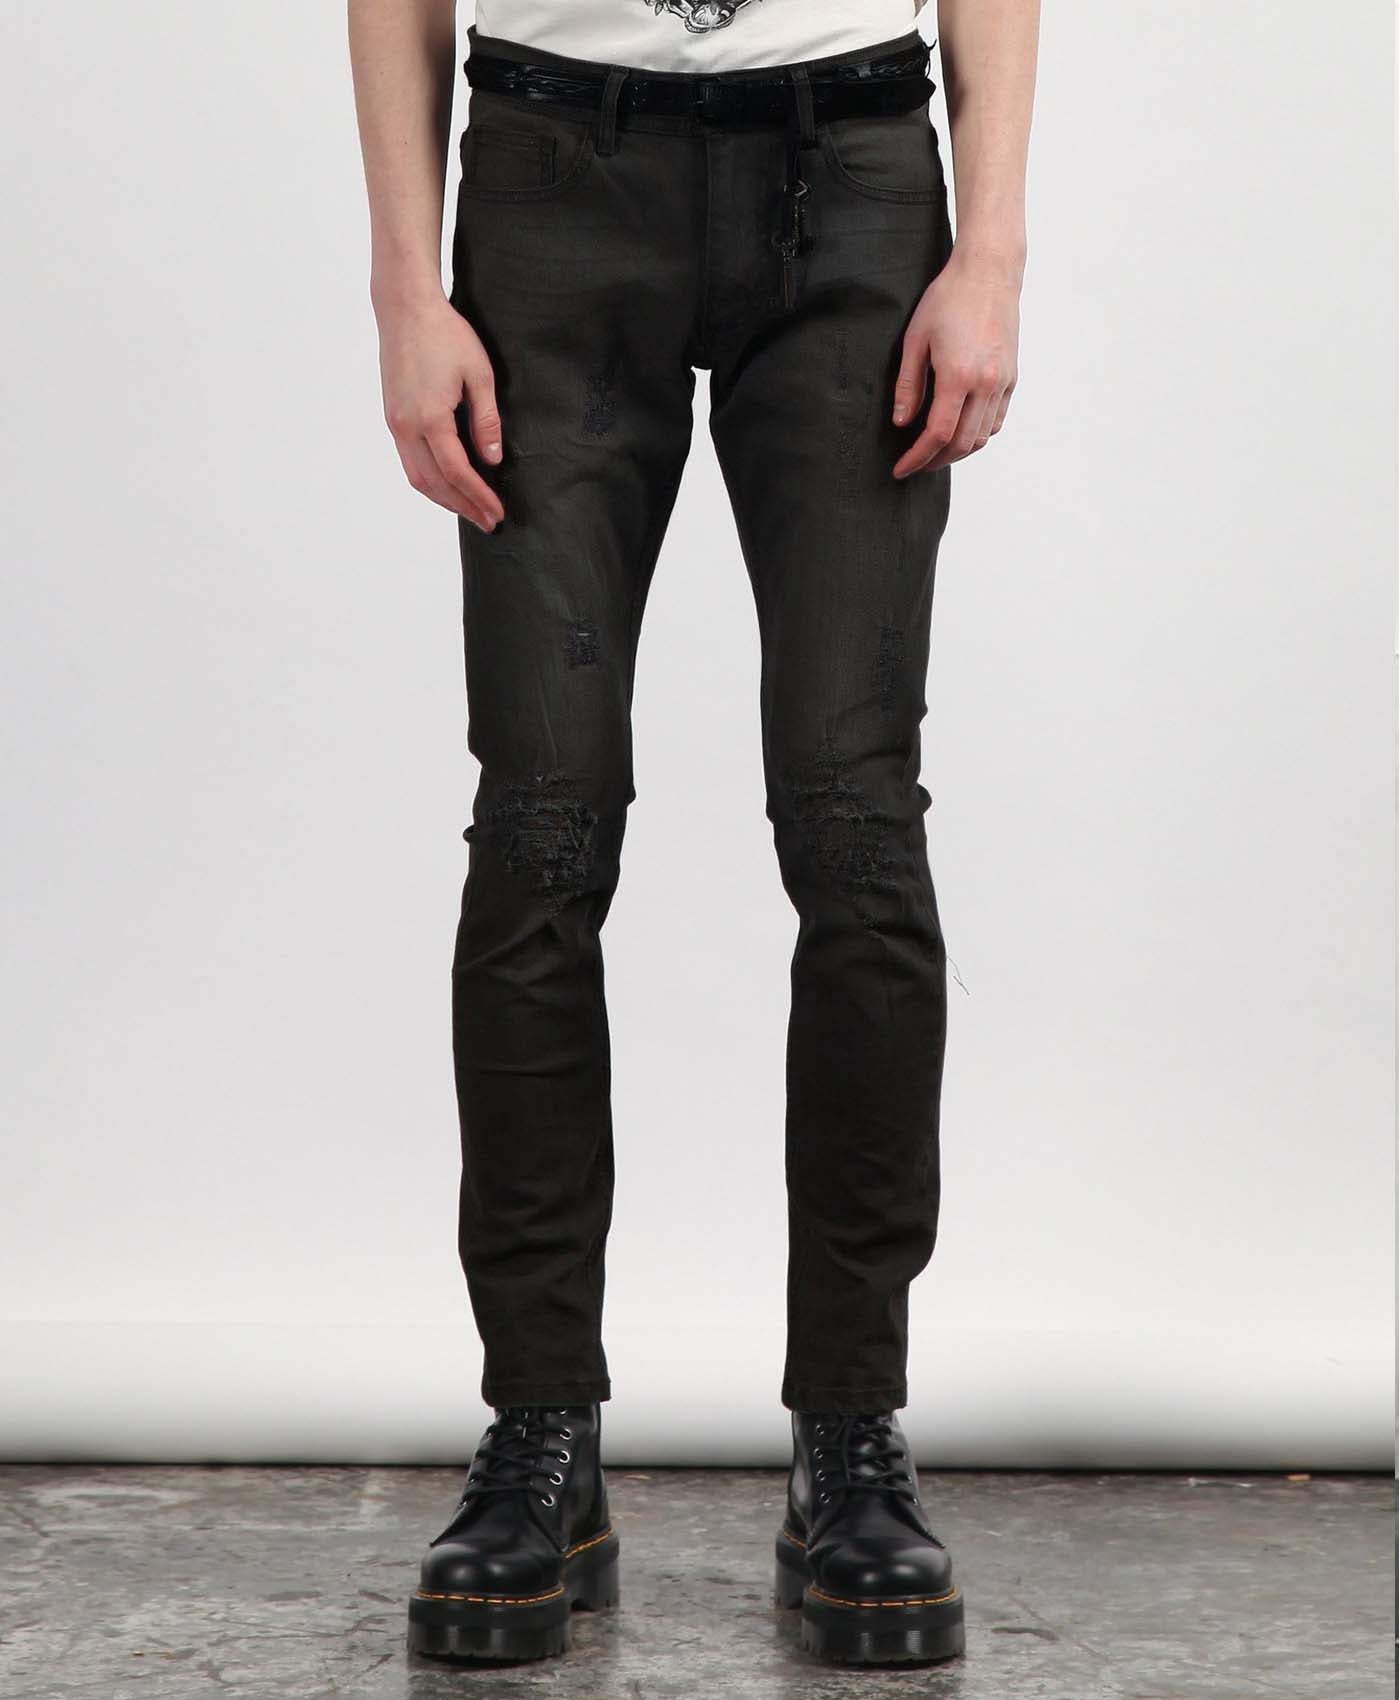 Black Damage Jeans